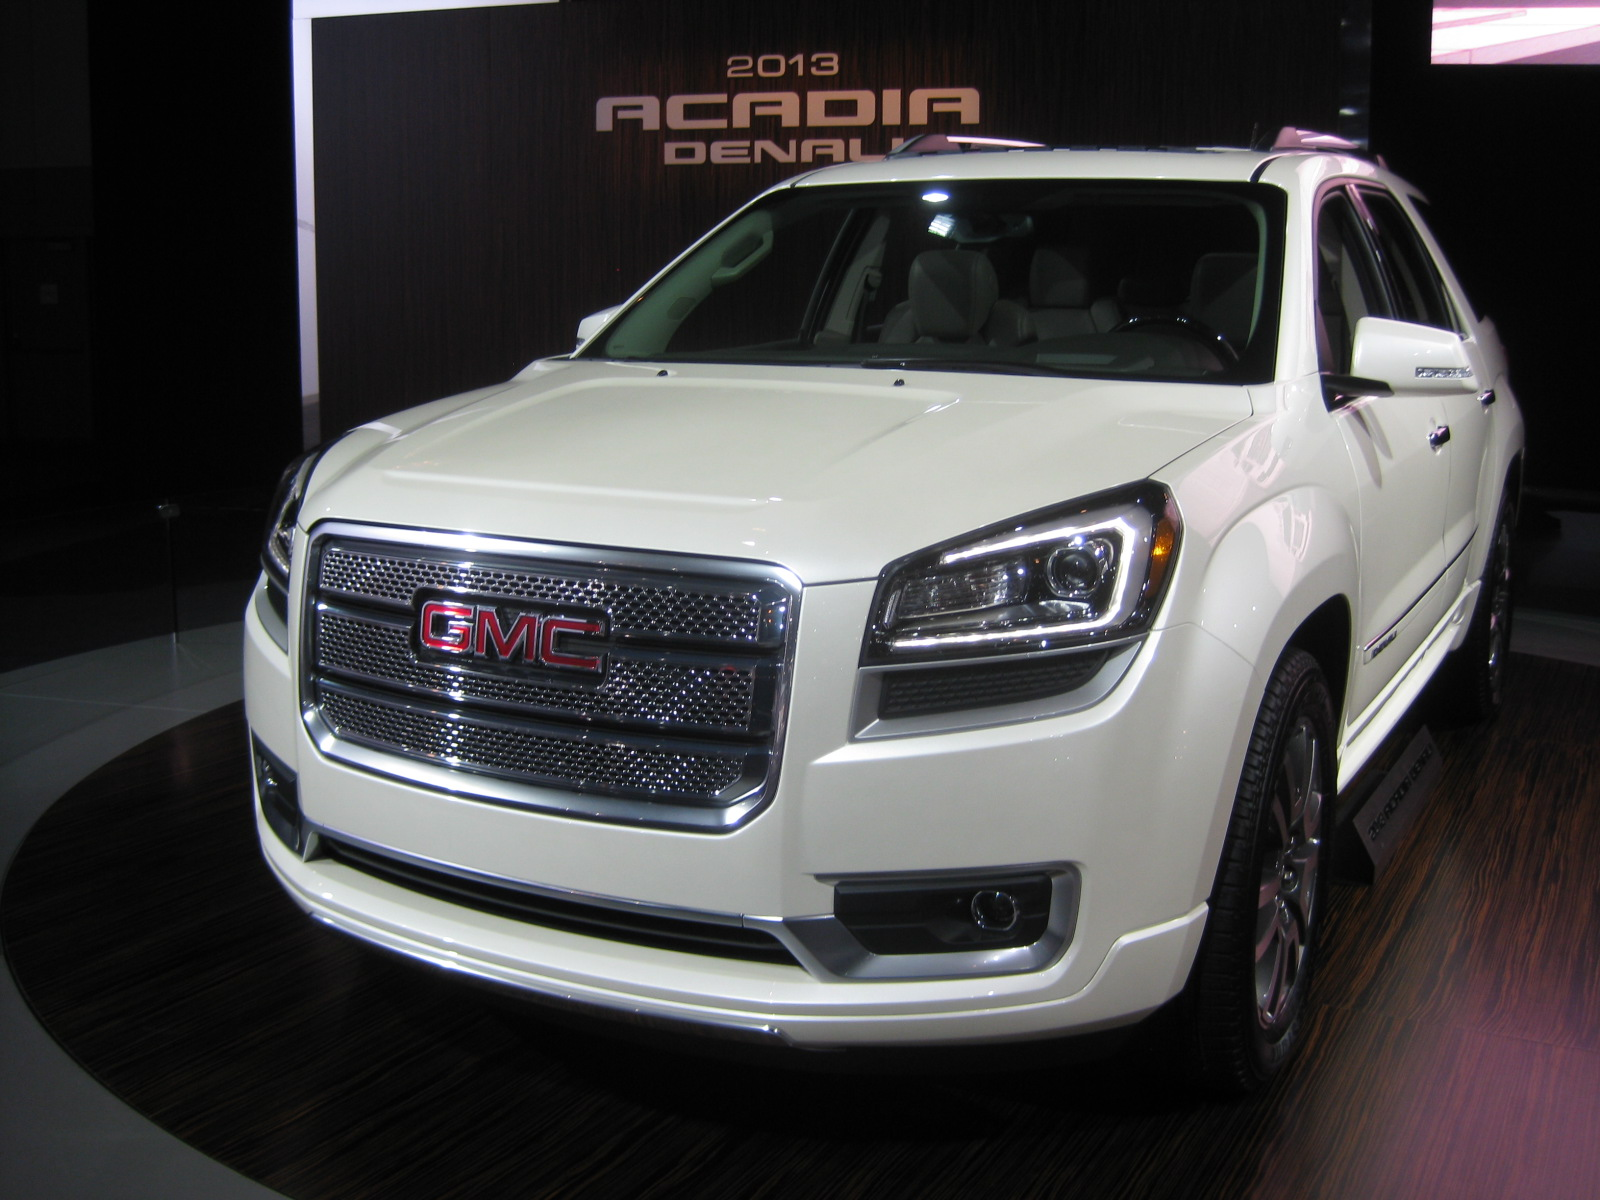 at and review by on the gmc in illinois photos acadia chicago february feb denali auto display show yaro